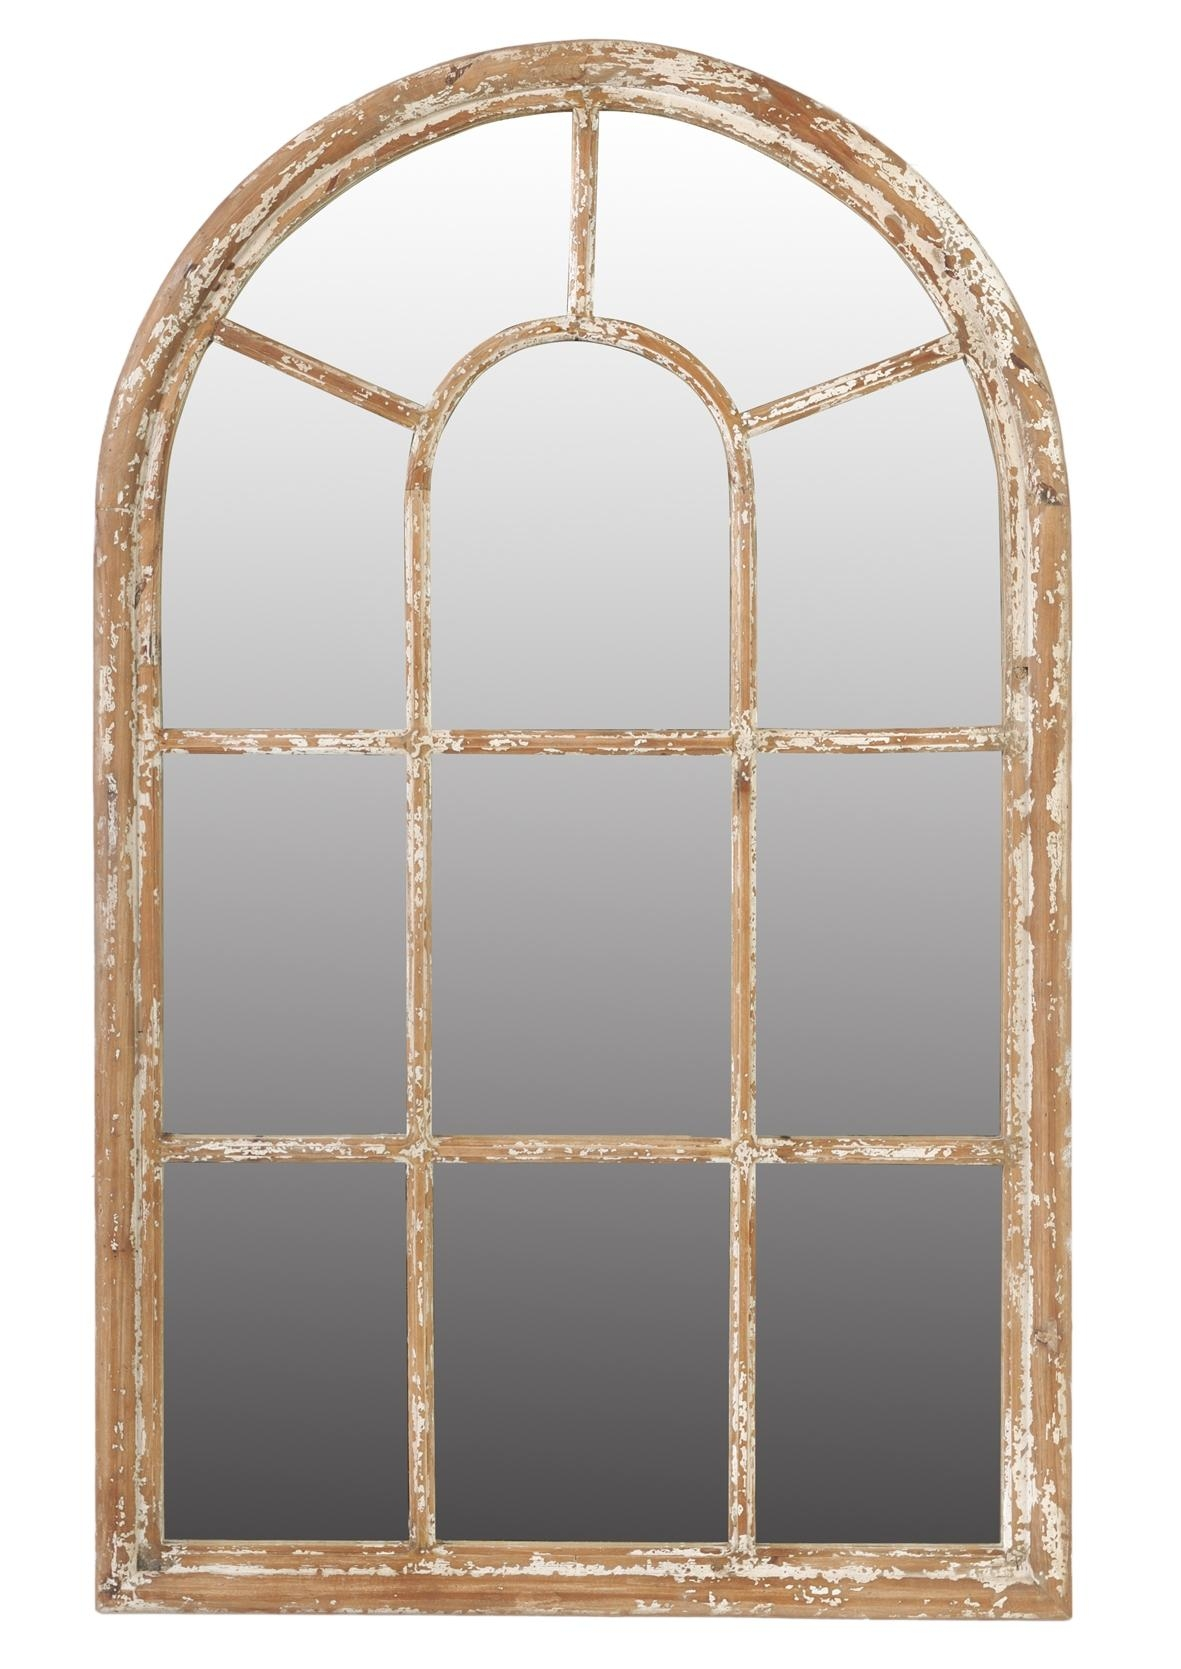 Fresh Austin Antique Arched Window Mirror #19768 Throughout Antique Arched Mirror (View 20 of 20)